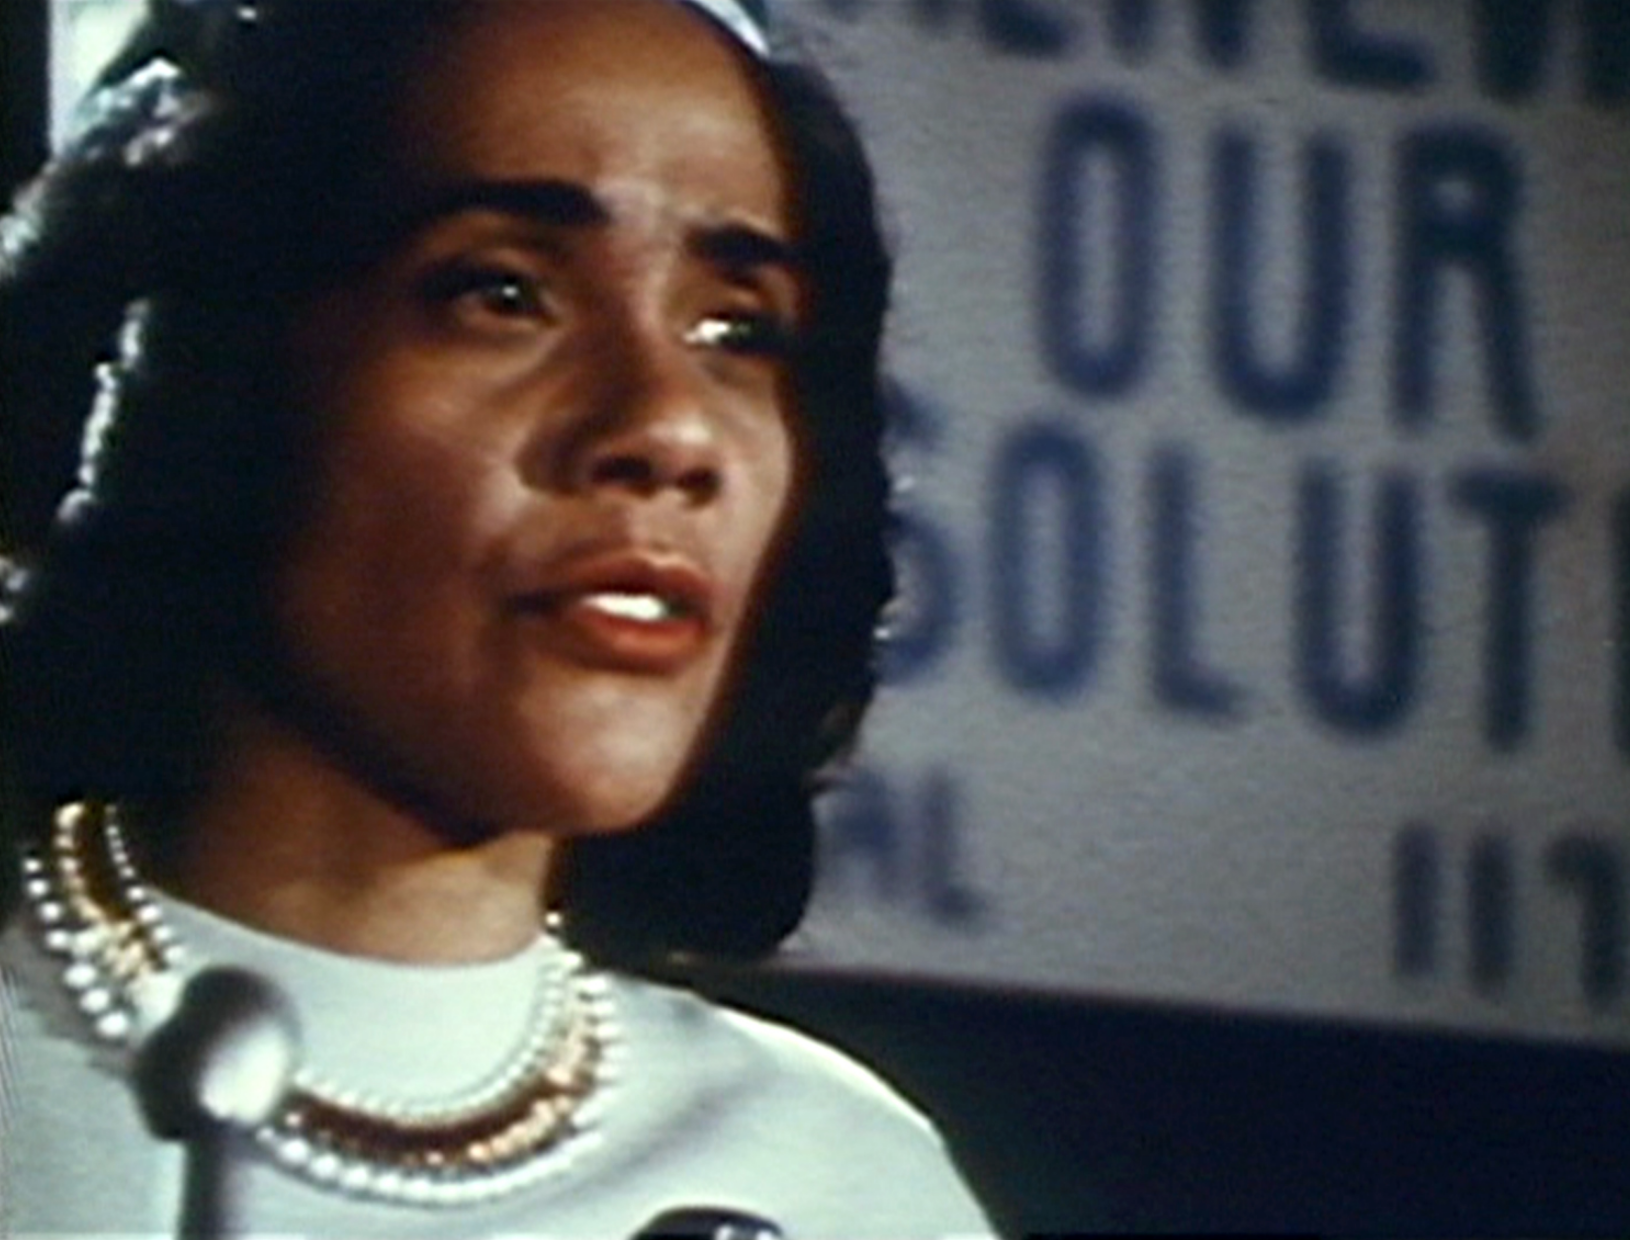 Thursday, 3/28 | 6:30PM - Films of Madeline AndersonMadeline Anderson, 65 min, 1960-1970Q&A with Madeline Anderson to follow program@ the City College of New York